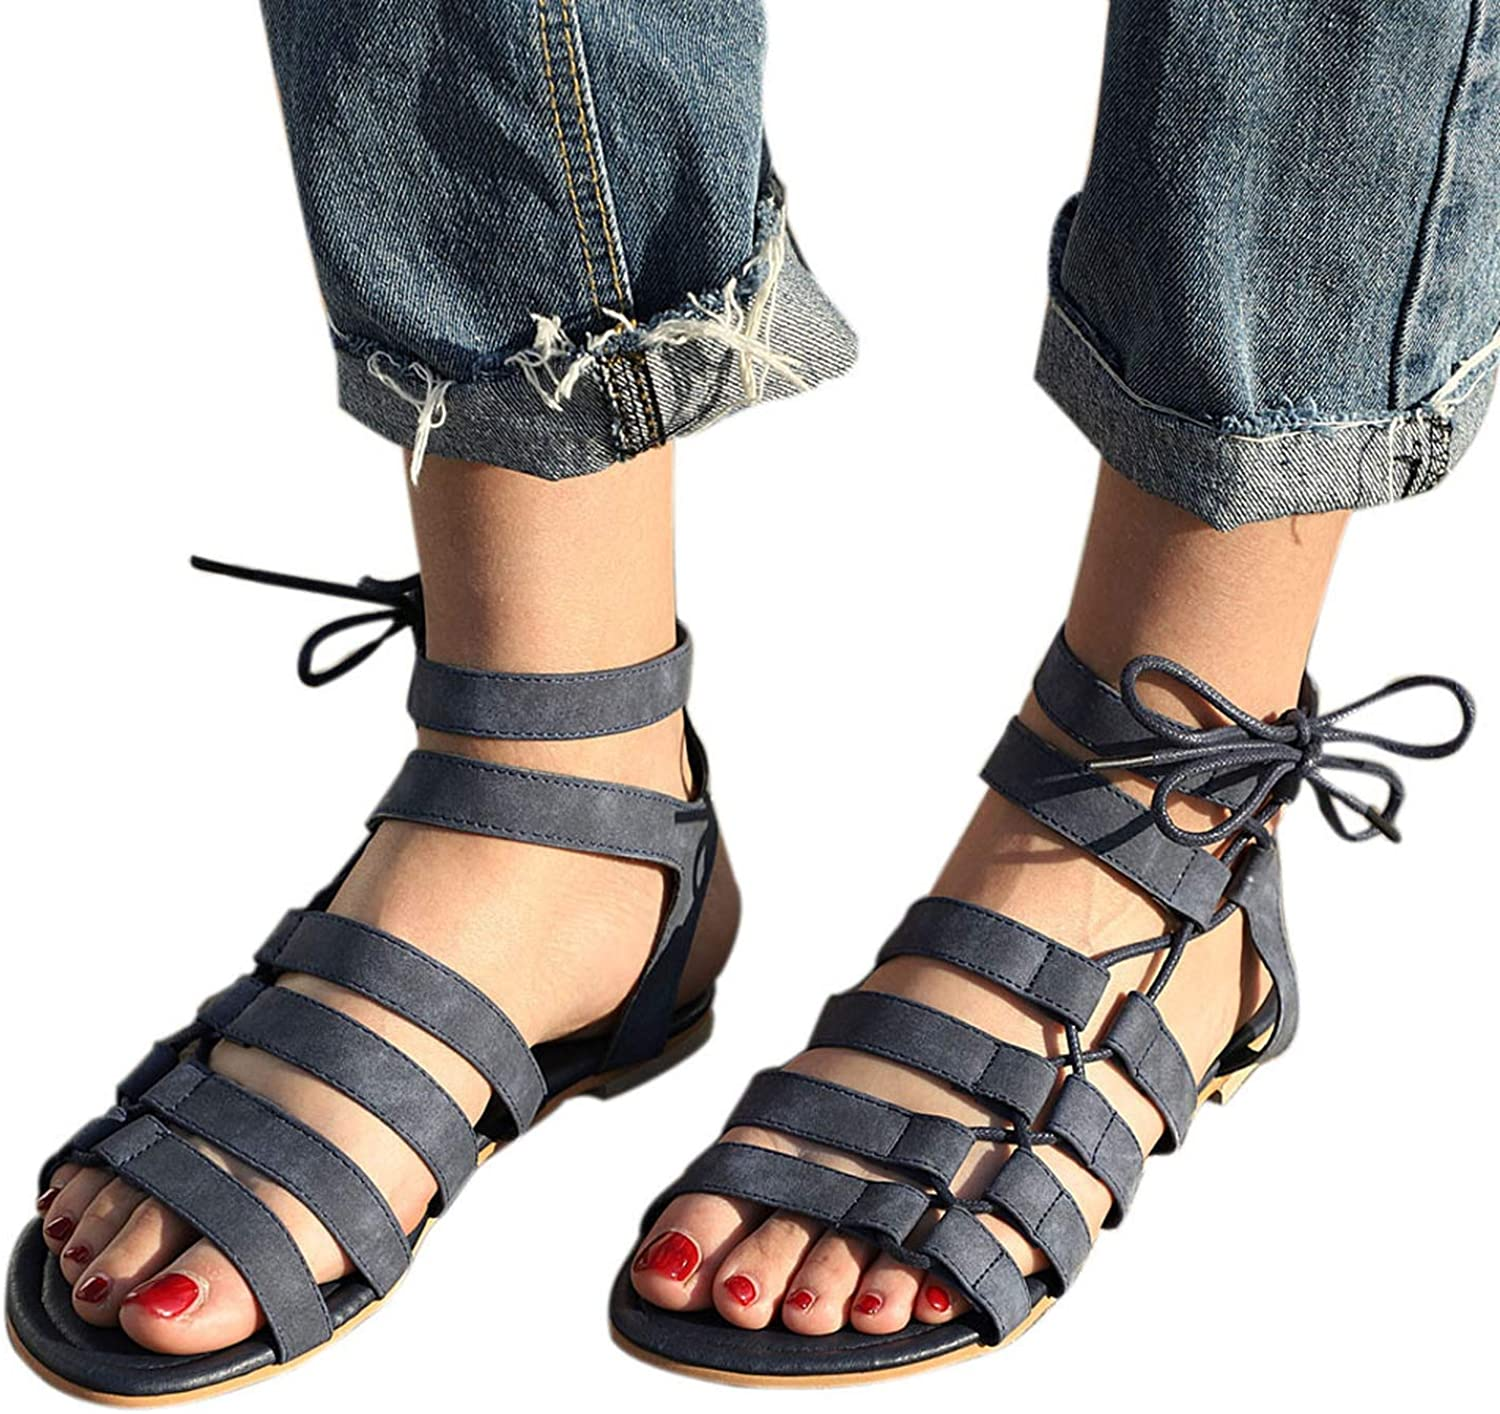 Women Sandals Flat with Bohemia Leisure Lady Sandals Peep-Toe Outdoor Footwear shoes